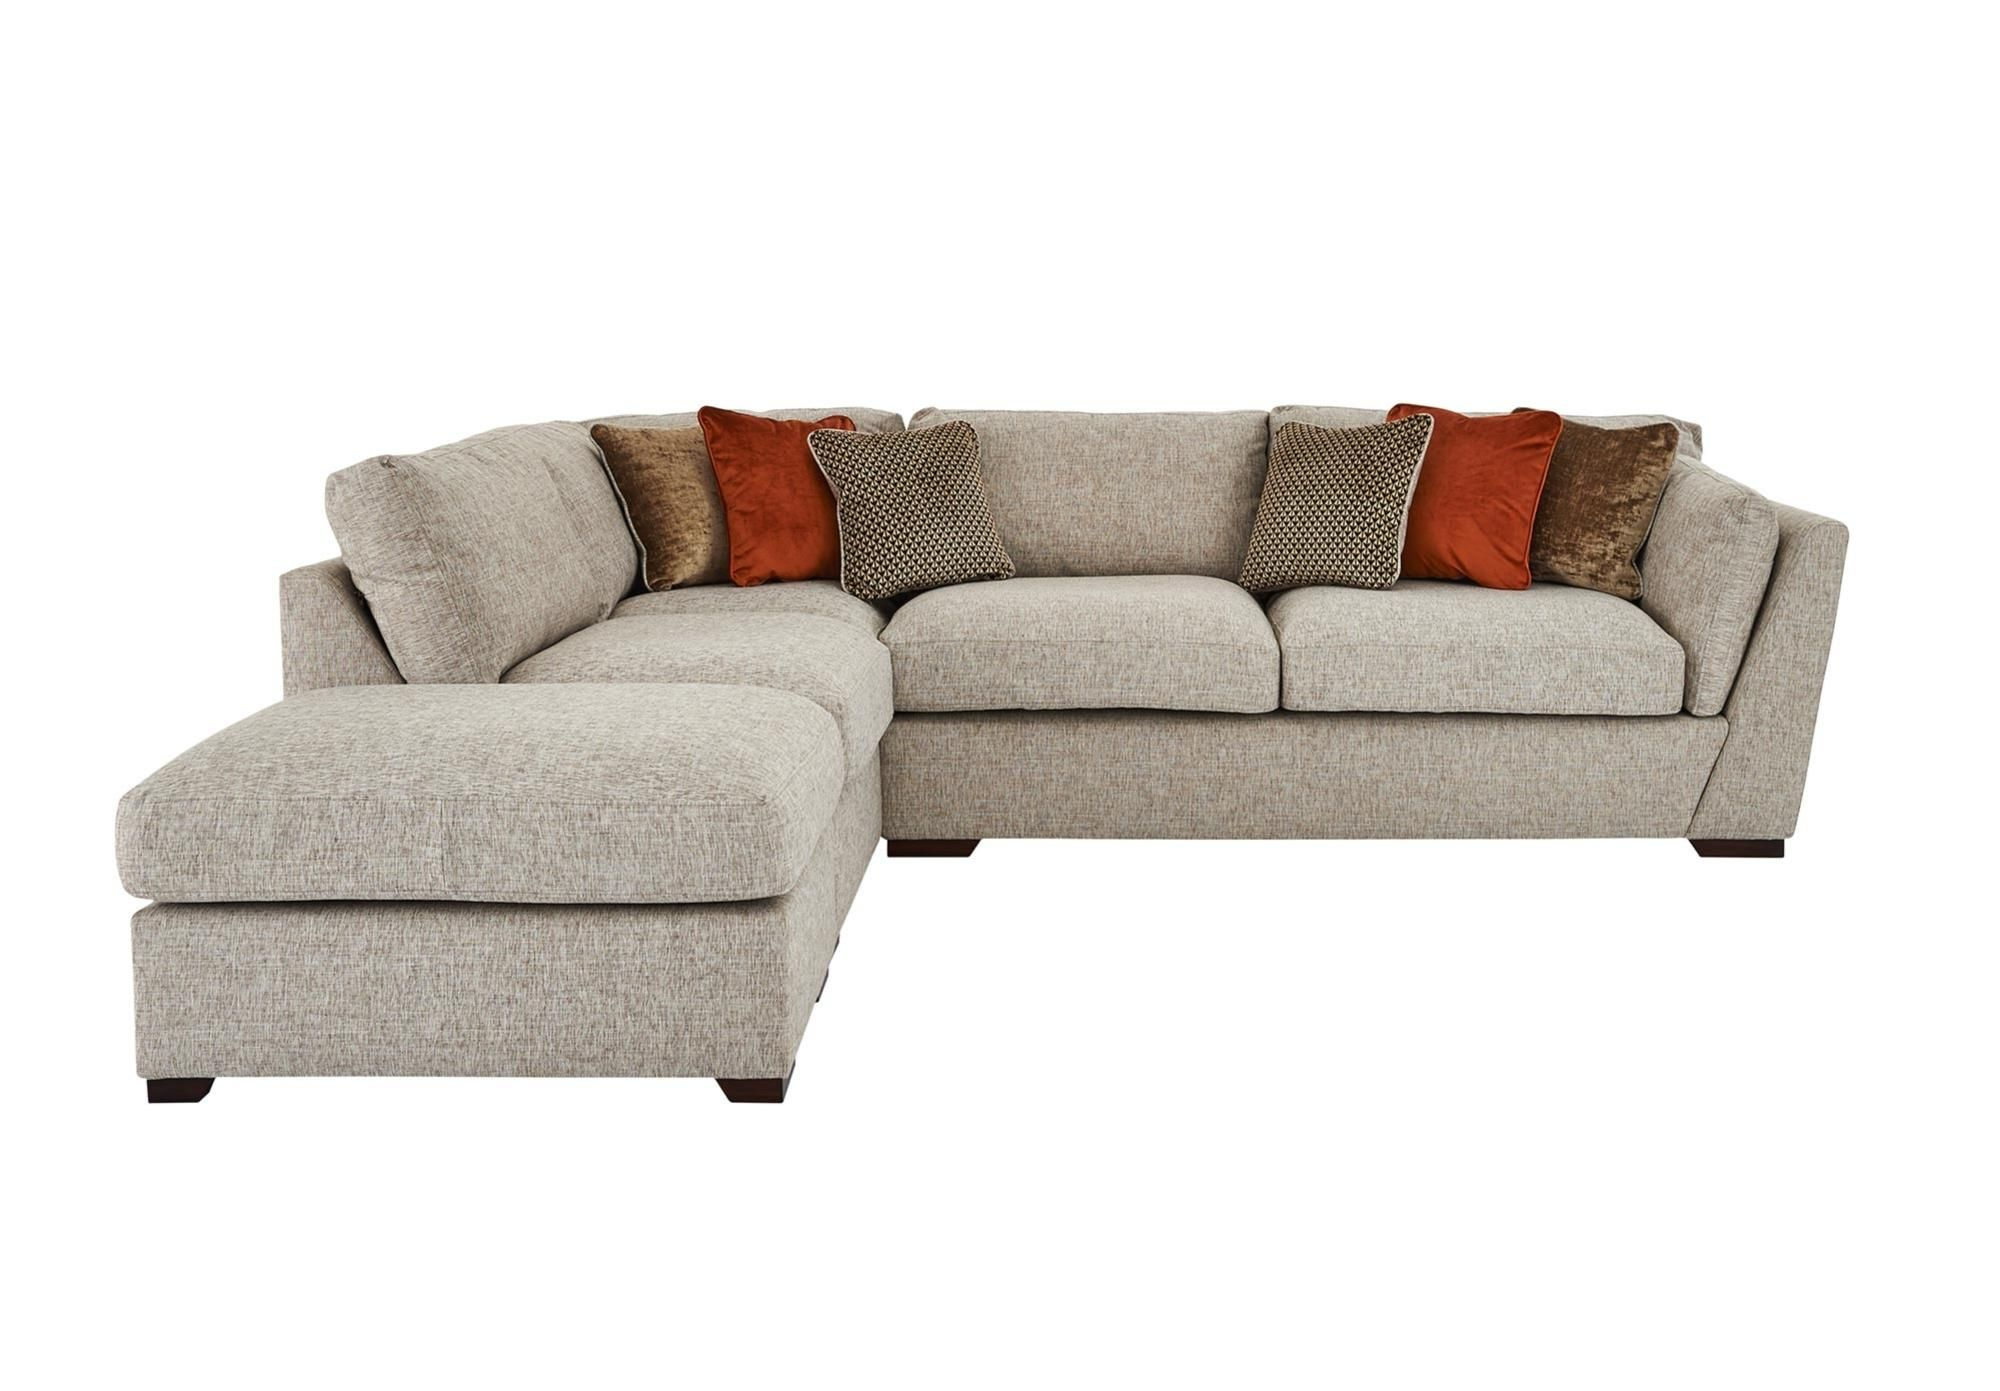 Corner Chaise And Footstool Bailey Living Room Furniture Sets Ideas Furnit Leather Corner Sofa Leather Corner Sofa Living Room Corner Sofa Living Room